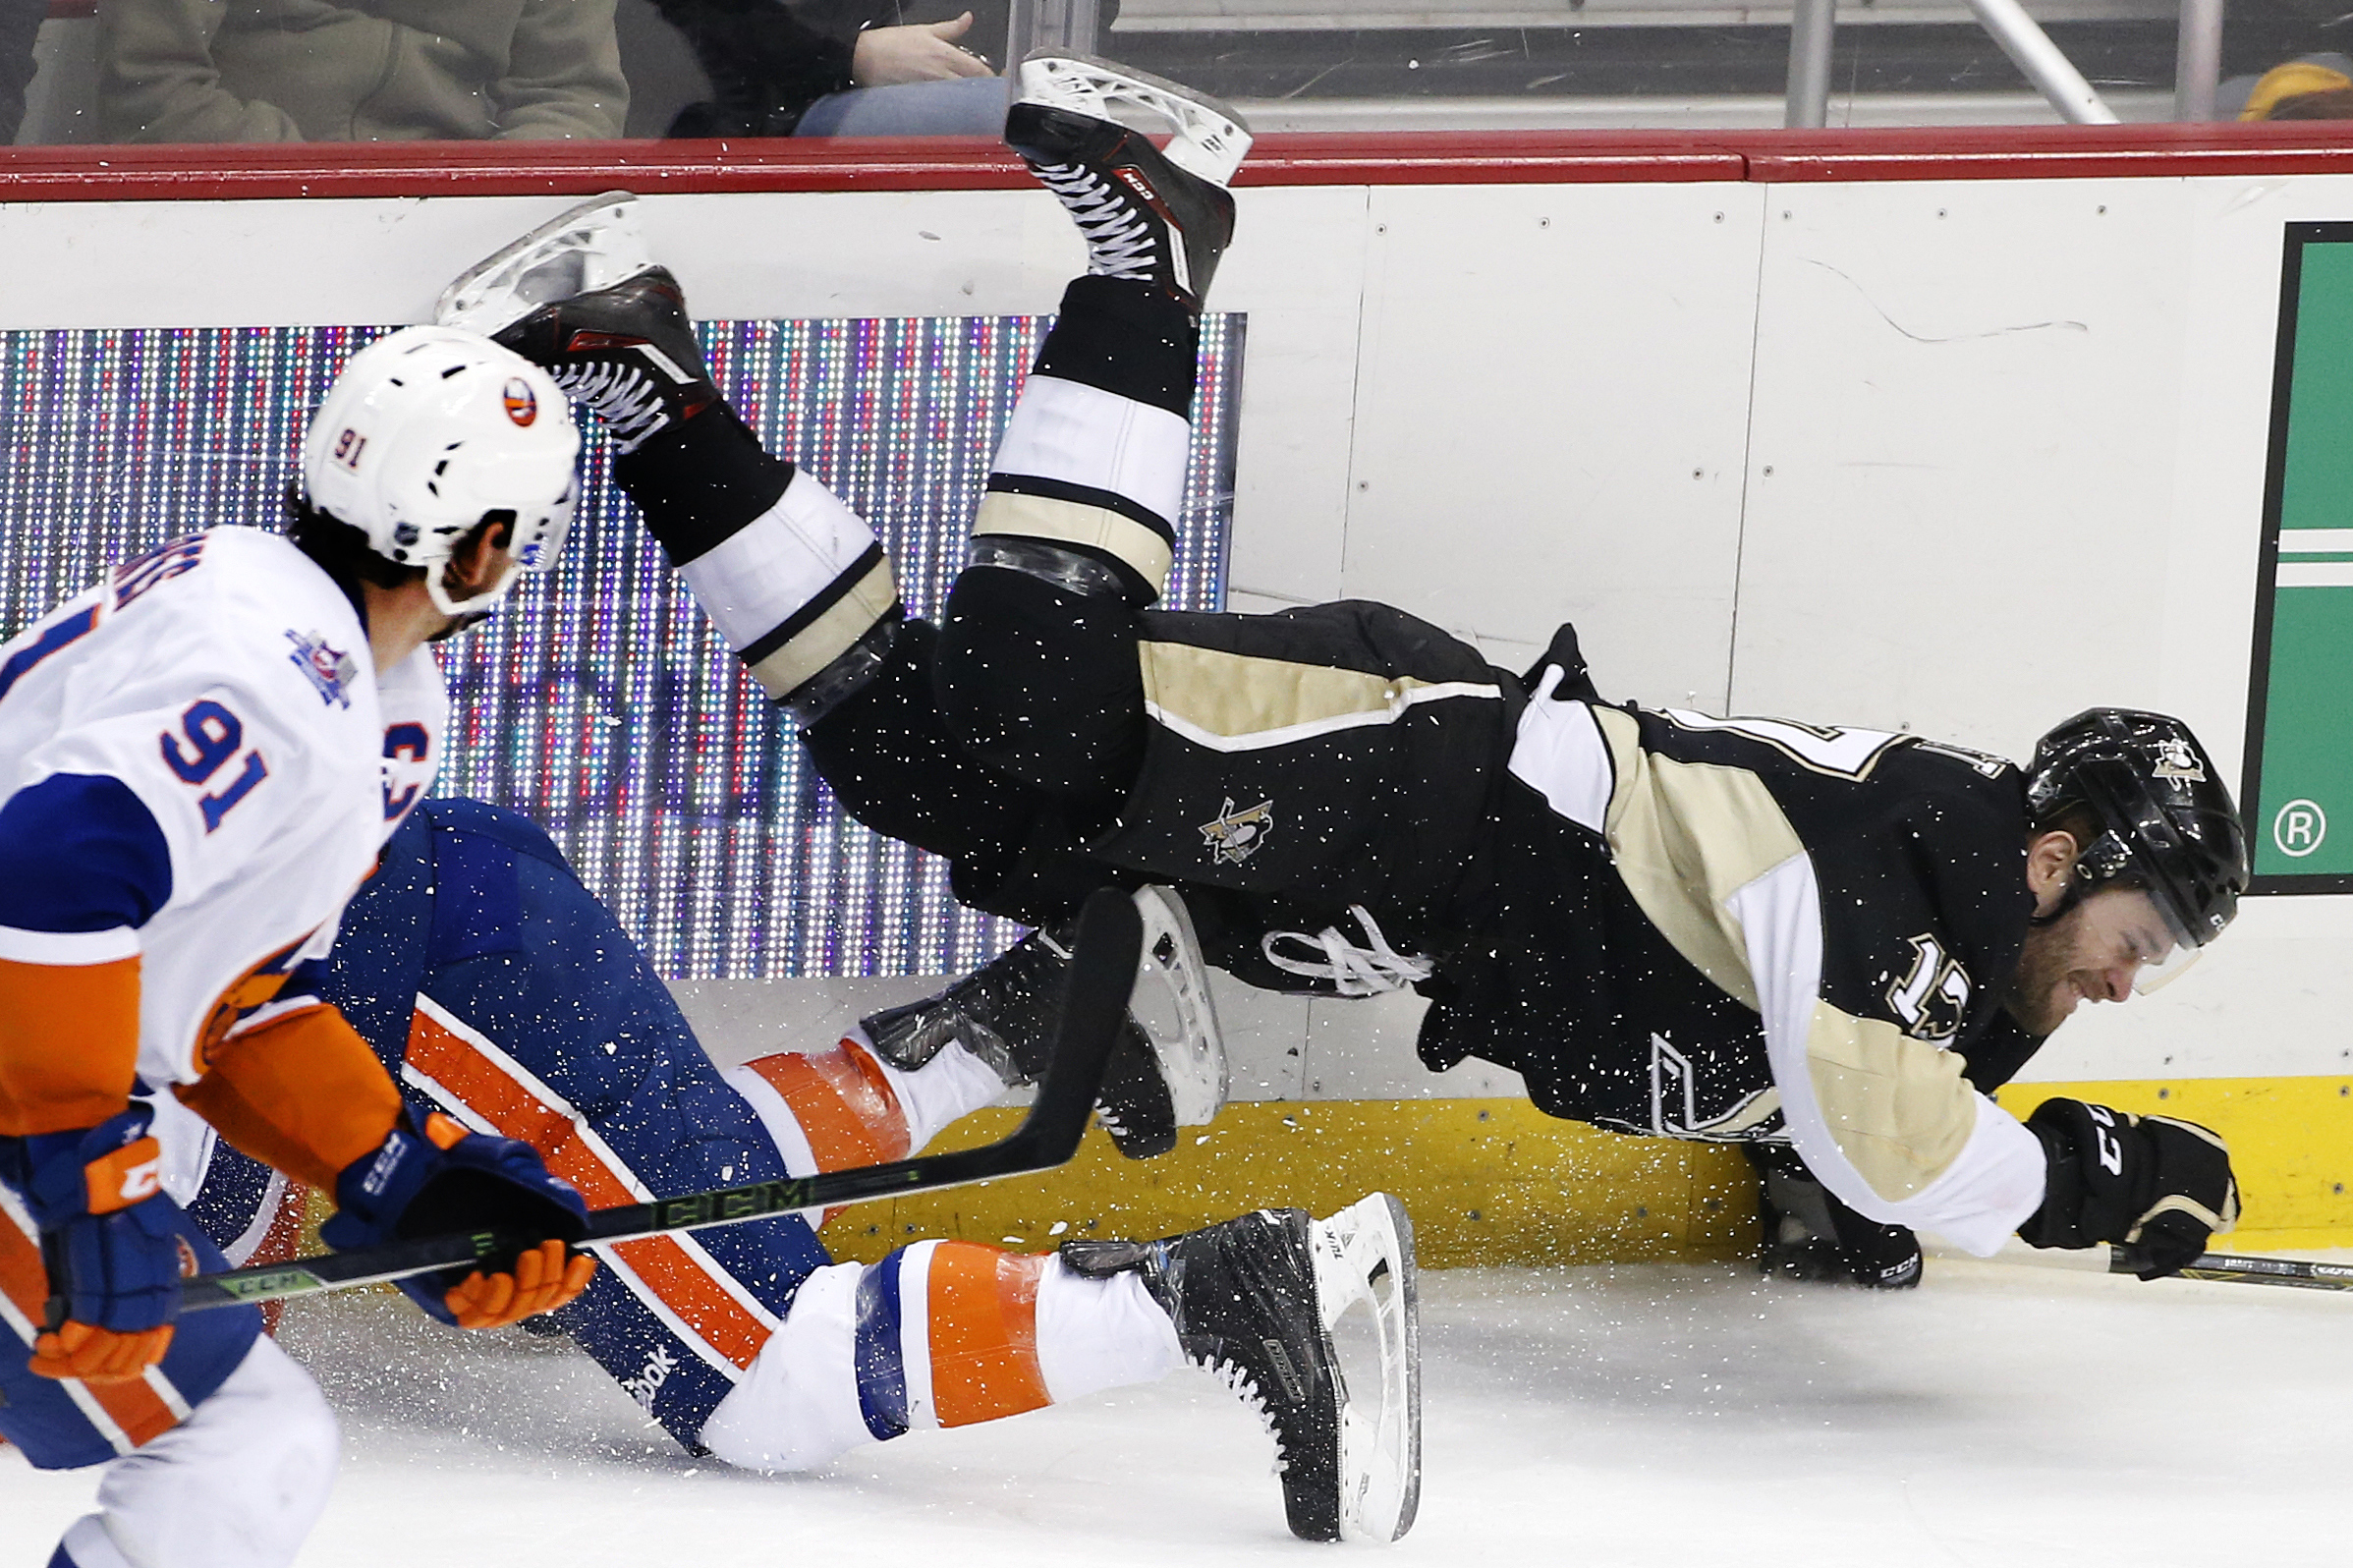 Pittsburgh Penguins' Bryan Rust (17) tumbles after colliding with New York Islanders' Johnny Boychuk, left rear, during the first period of an NHL hockey game in Pittsburgh, Tuesday, March 15, 2016. (AP Photo/Gene J. Puskar)